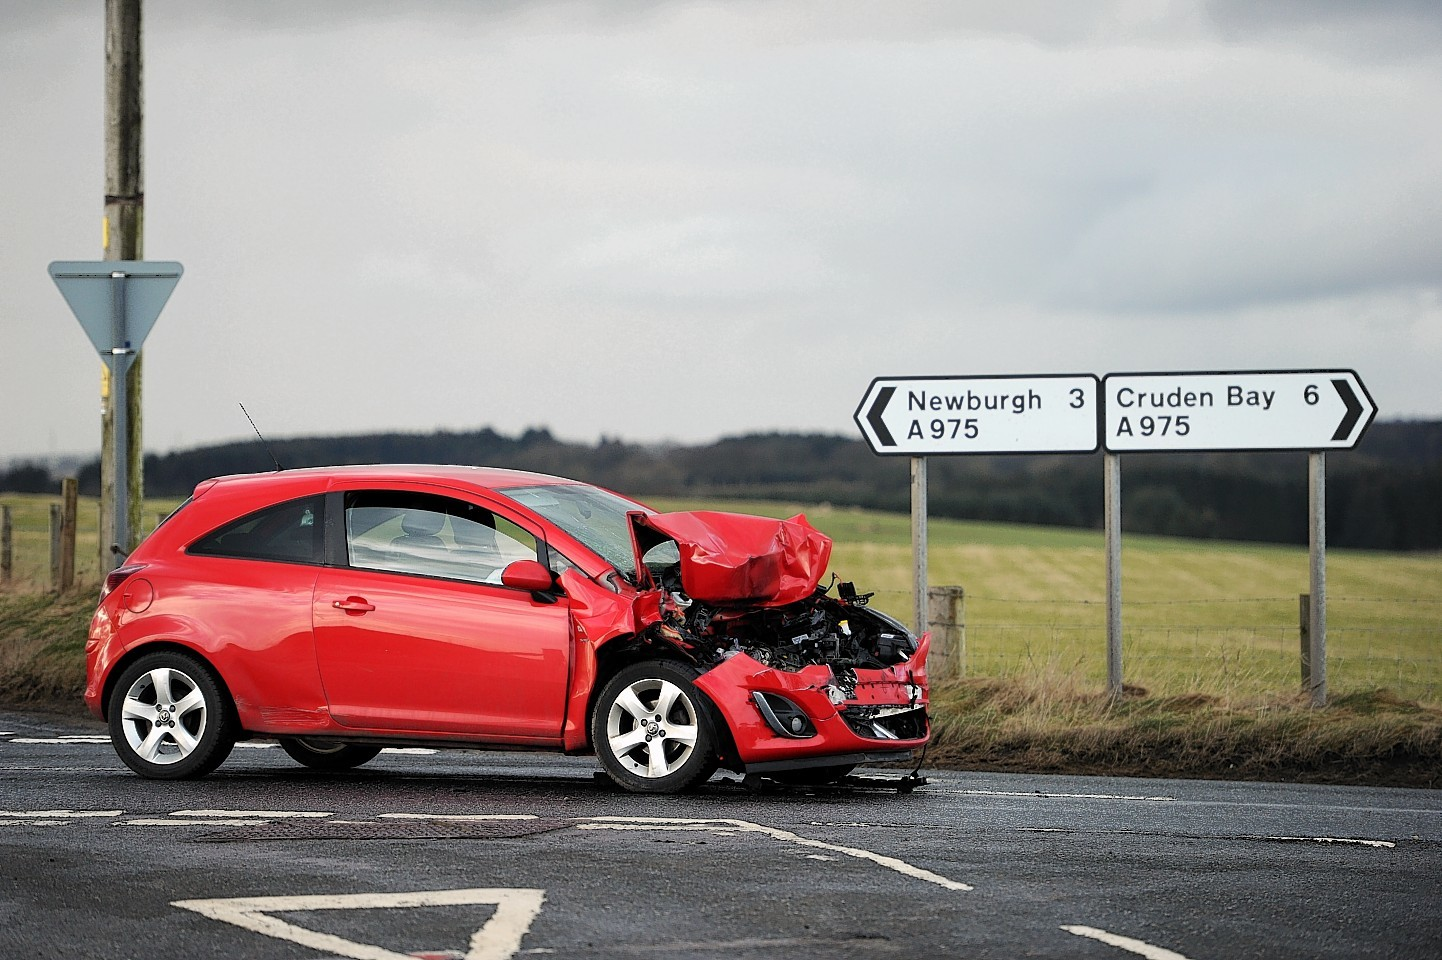 The accident took place on the A975